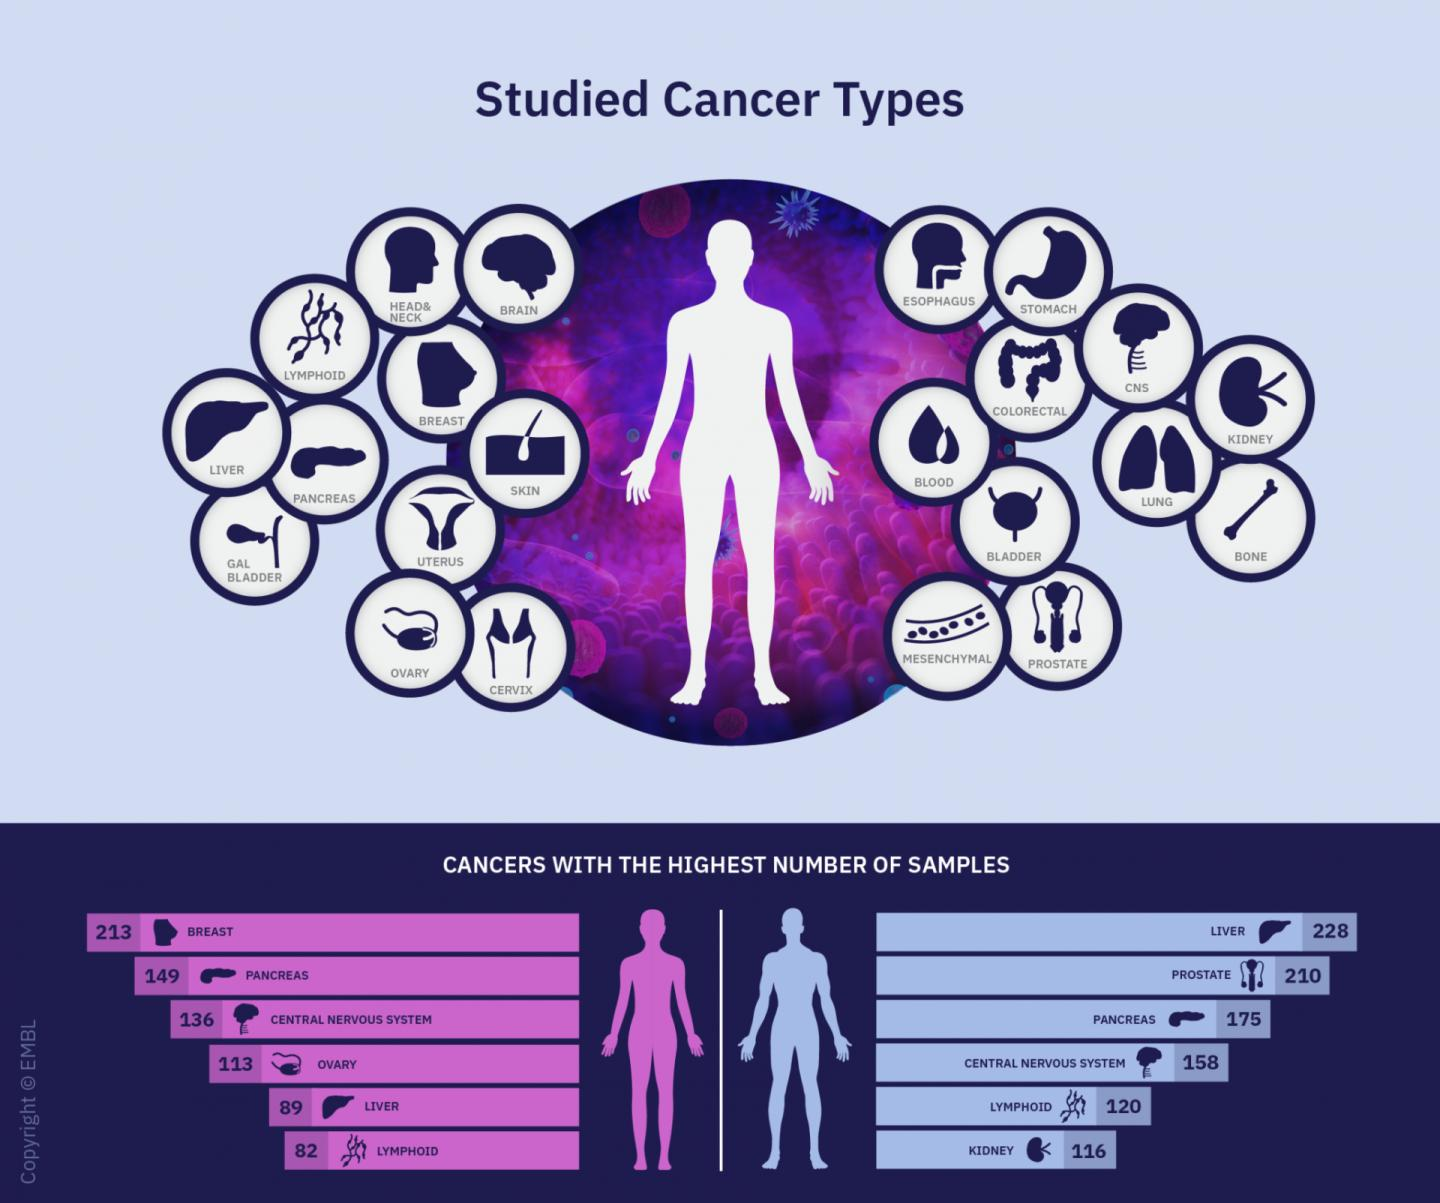 Cancer Types Studied